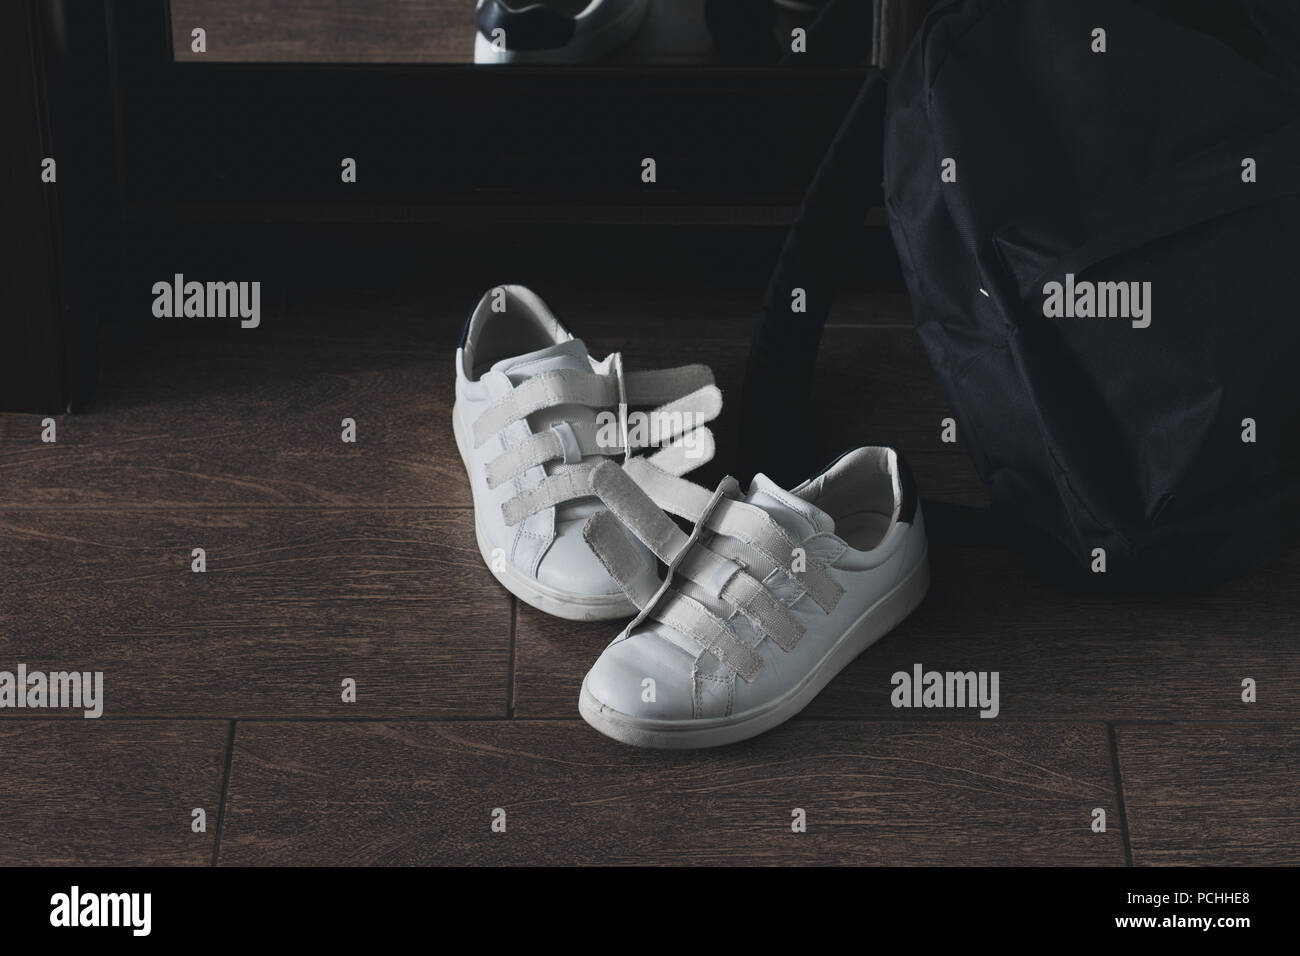 Pair of white shoes on velcro with a backpack close-up - Stock Image